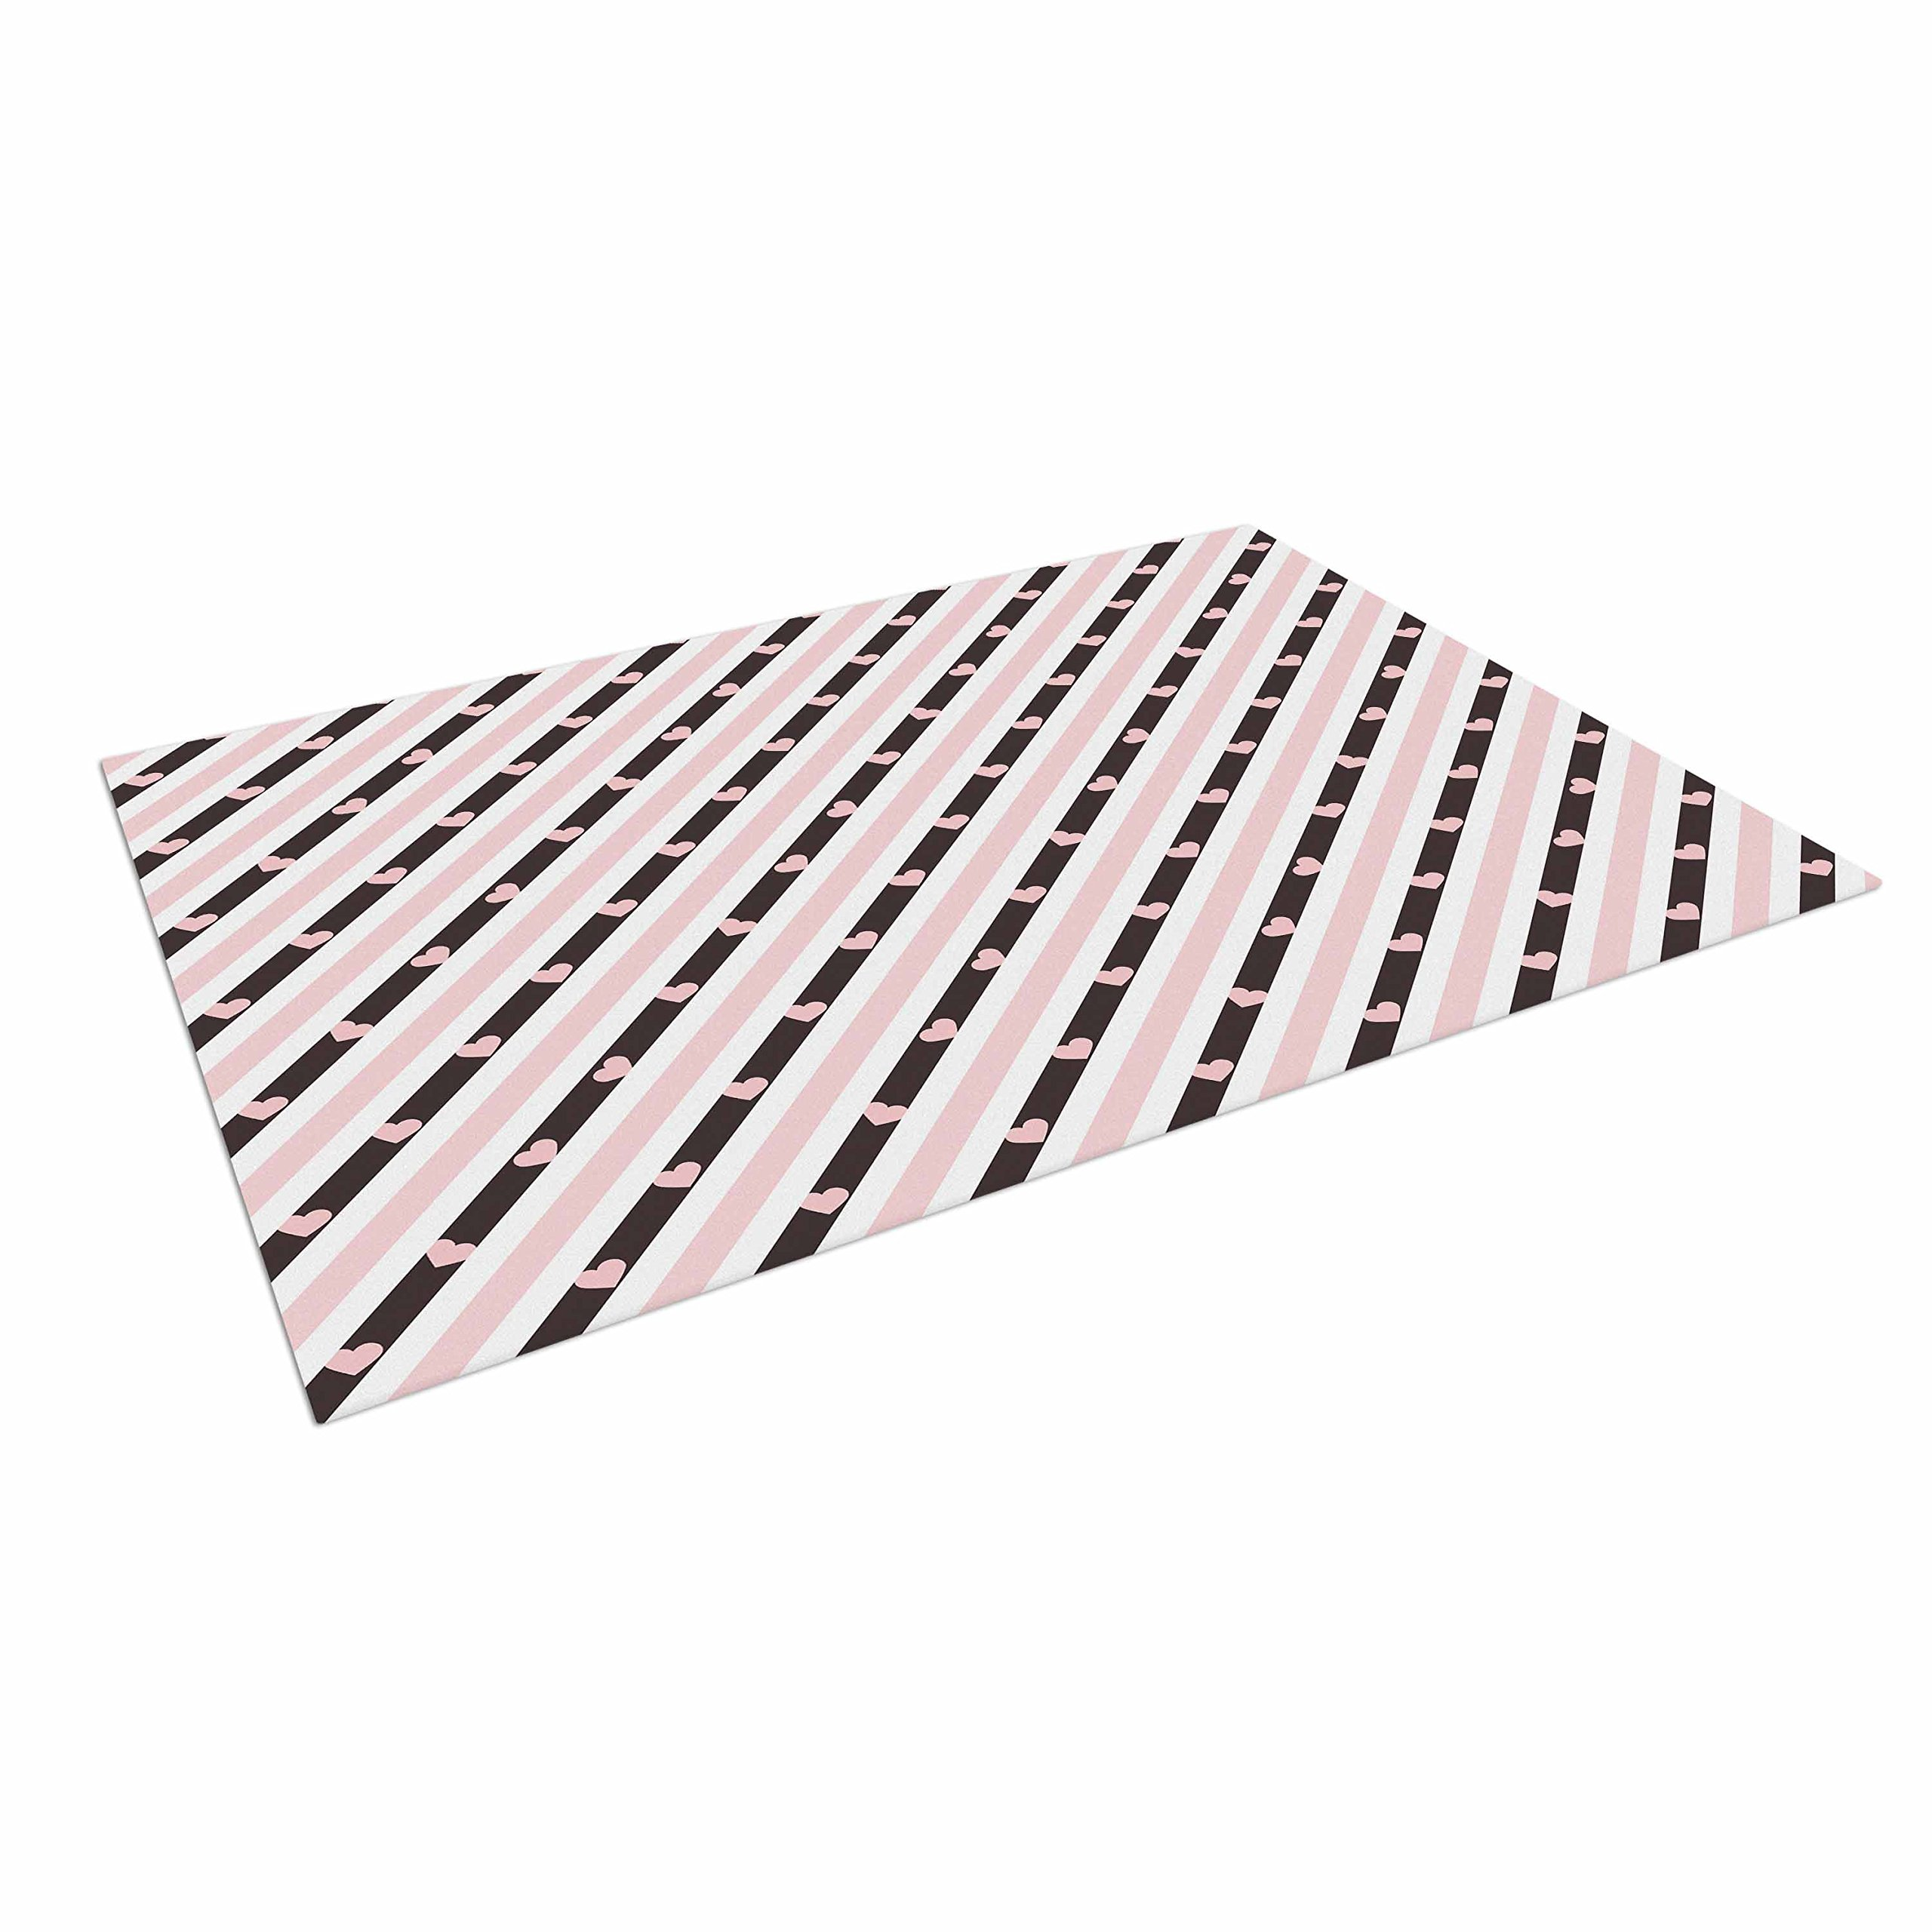 KESS InHouse Vasare Nar ''Pastel Stripe Heart'' Pink Love Outdoor Floor Mat, 4' x 5'